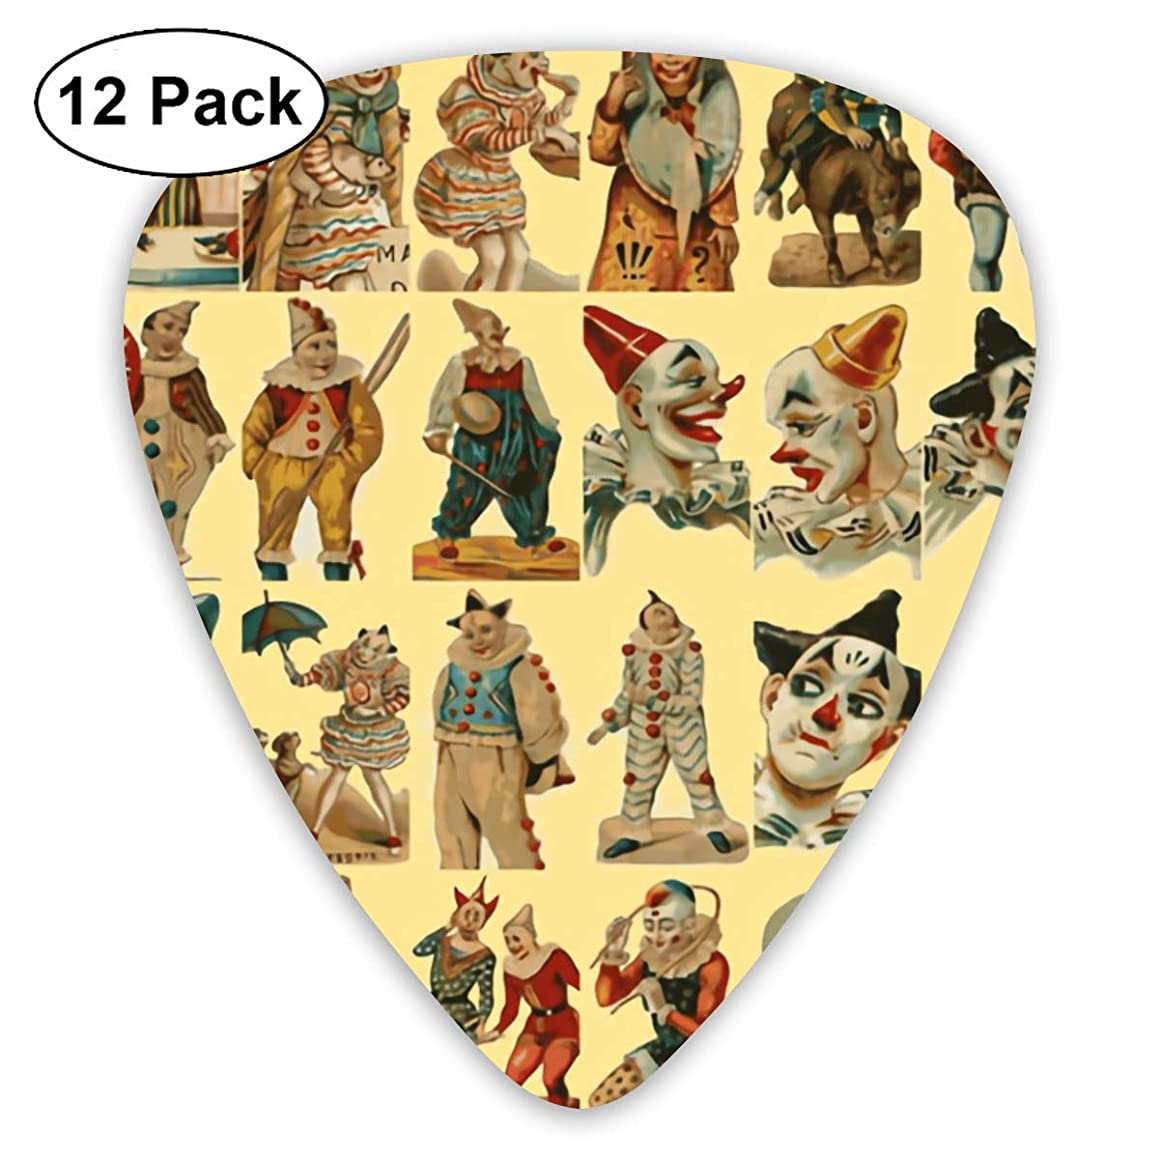 Medieval Clown Bendy Ultra Thin 0.46 Med 0.73 Thick 0.96mm 4 Pieces Each Base Prime Plastic Jazz Mandolin Bass Ukelele Guitar Pick Plectrum Display